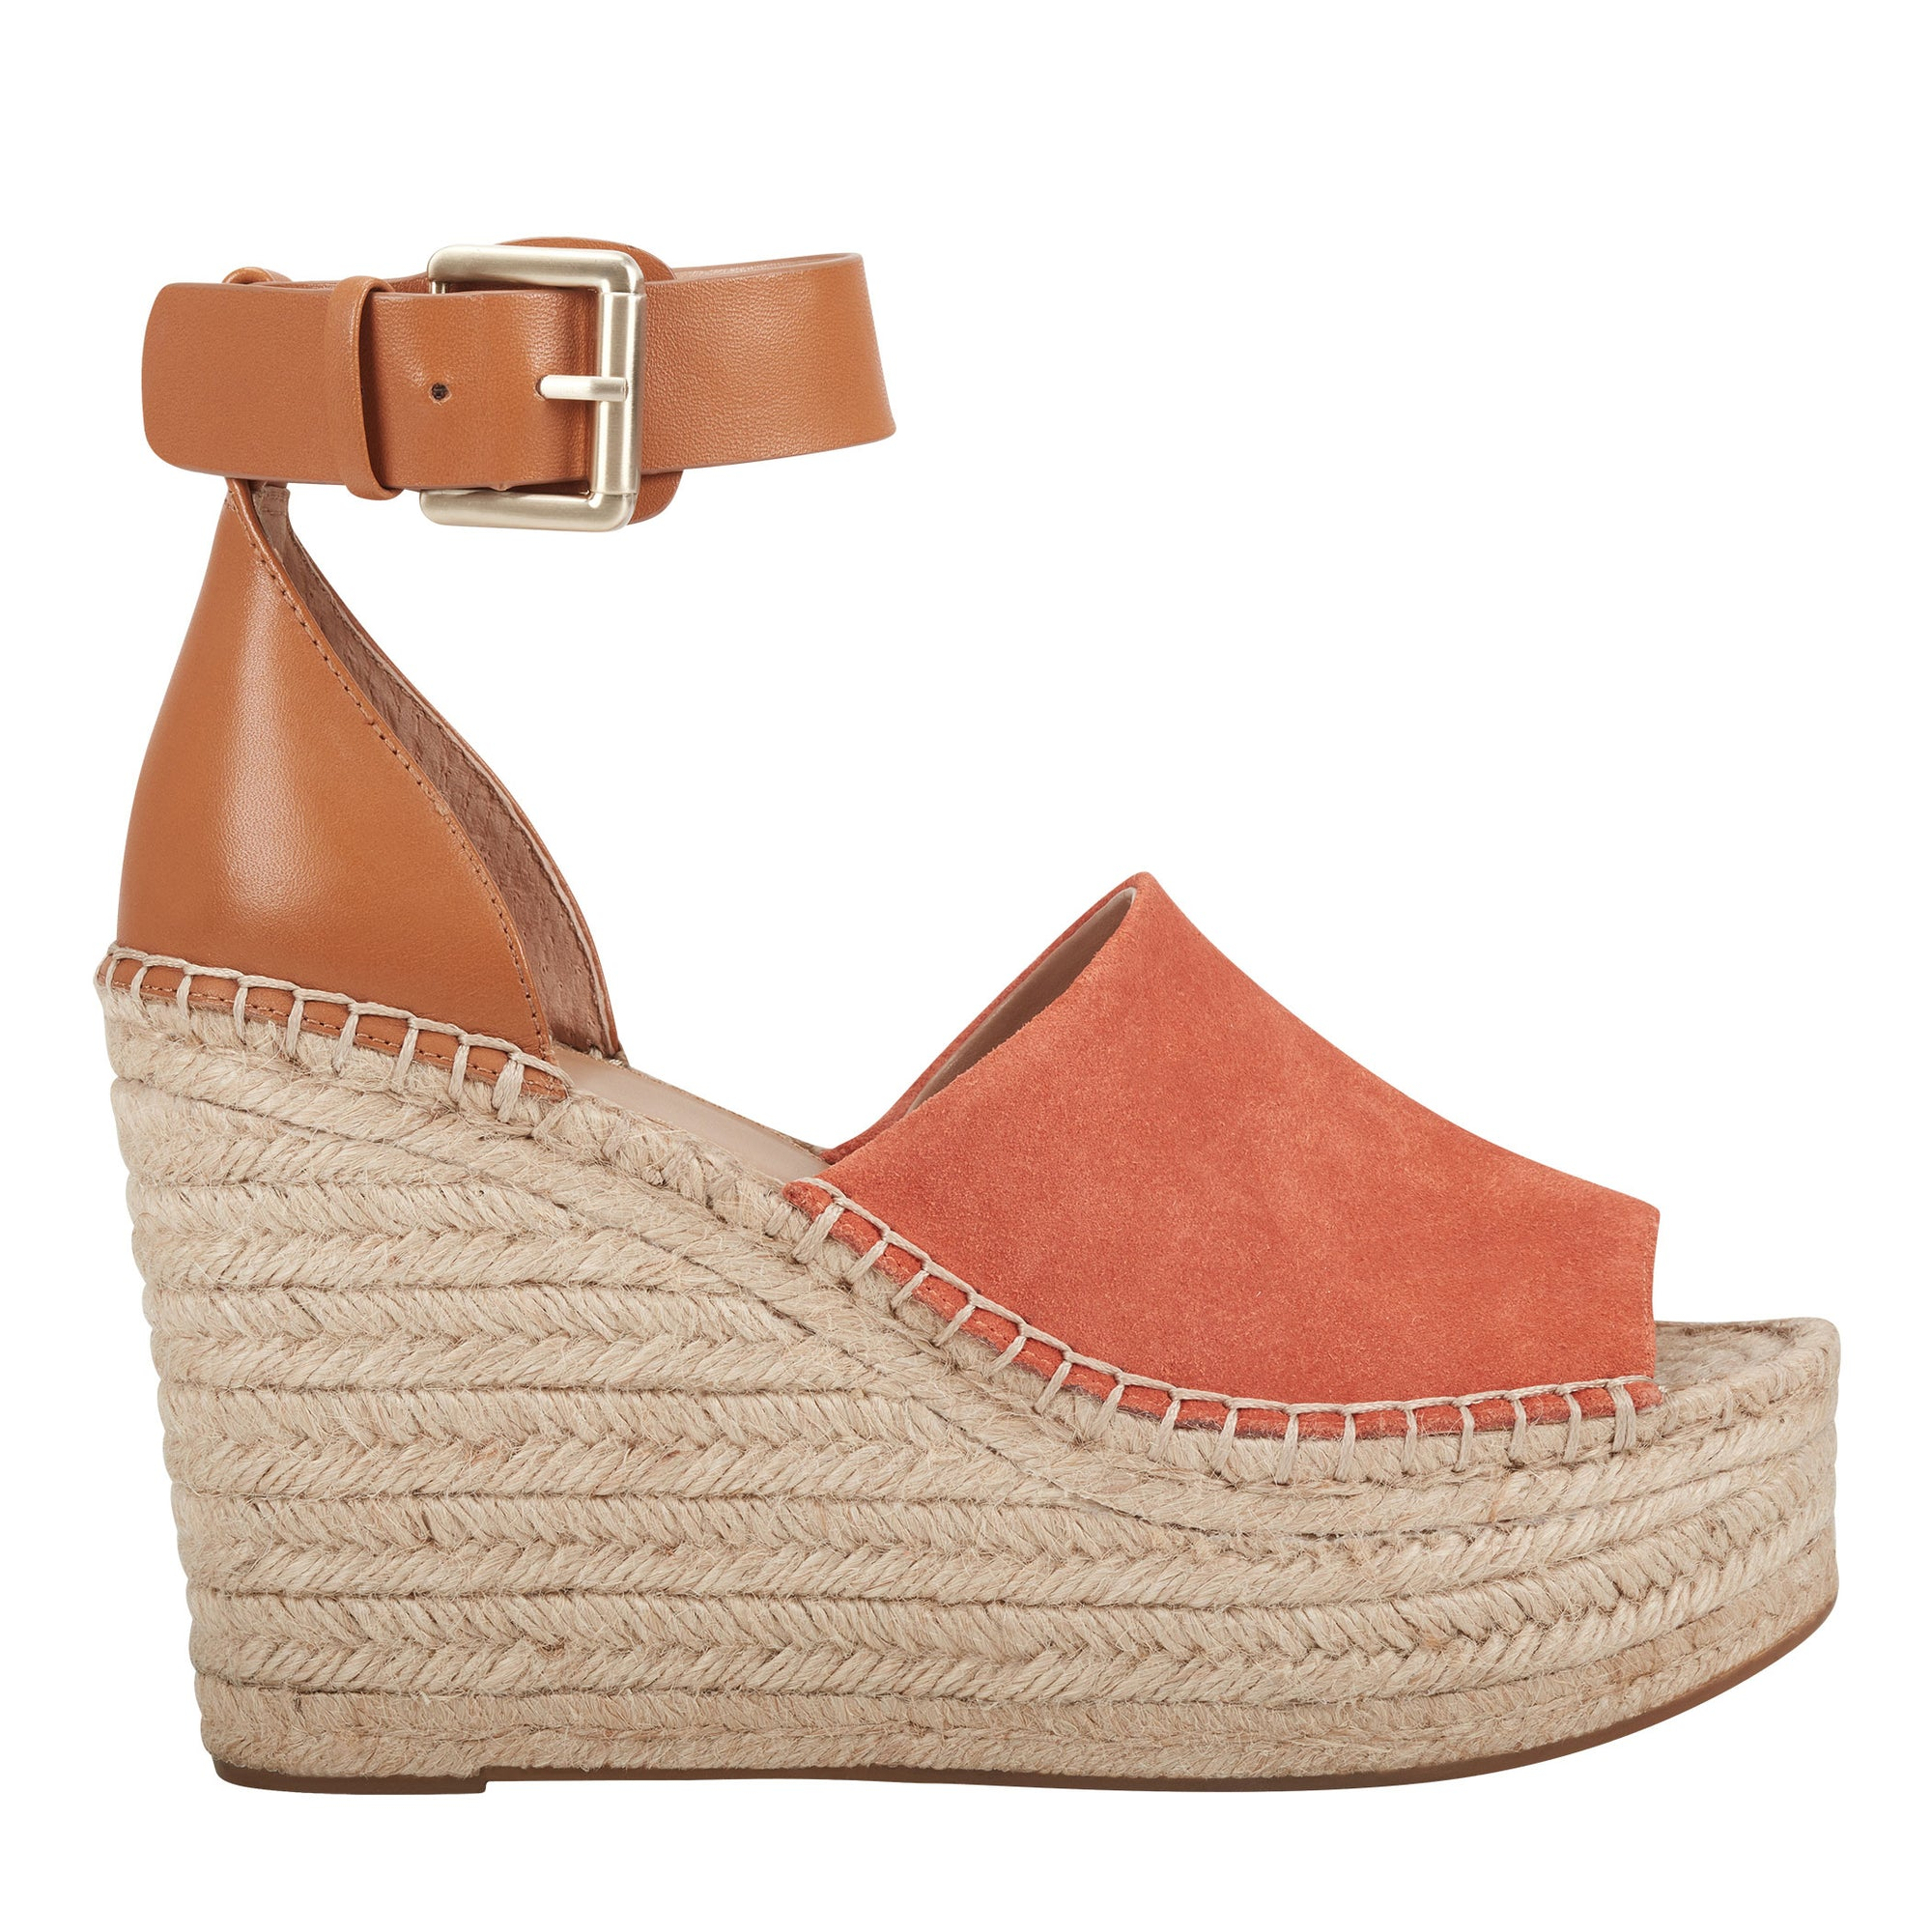 adalyn-espadrille-wedge-sandal-in-orange-suede